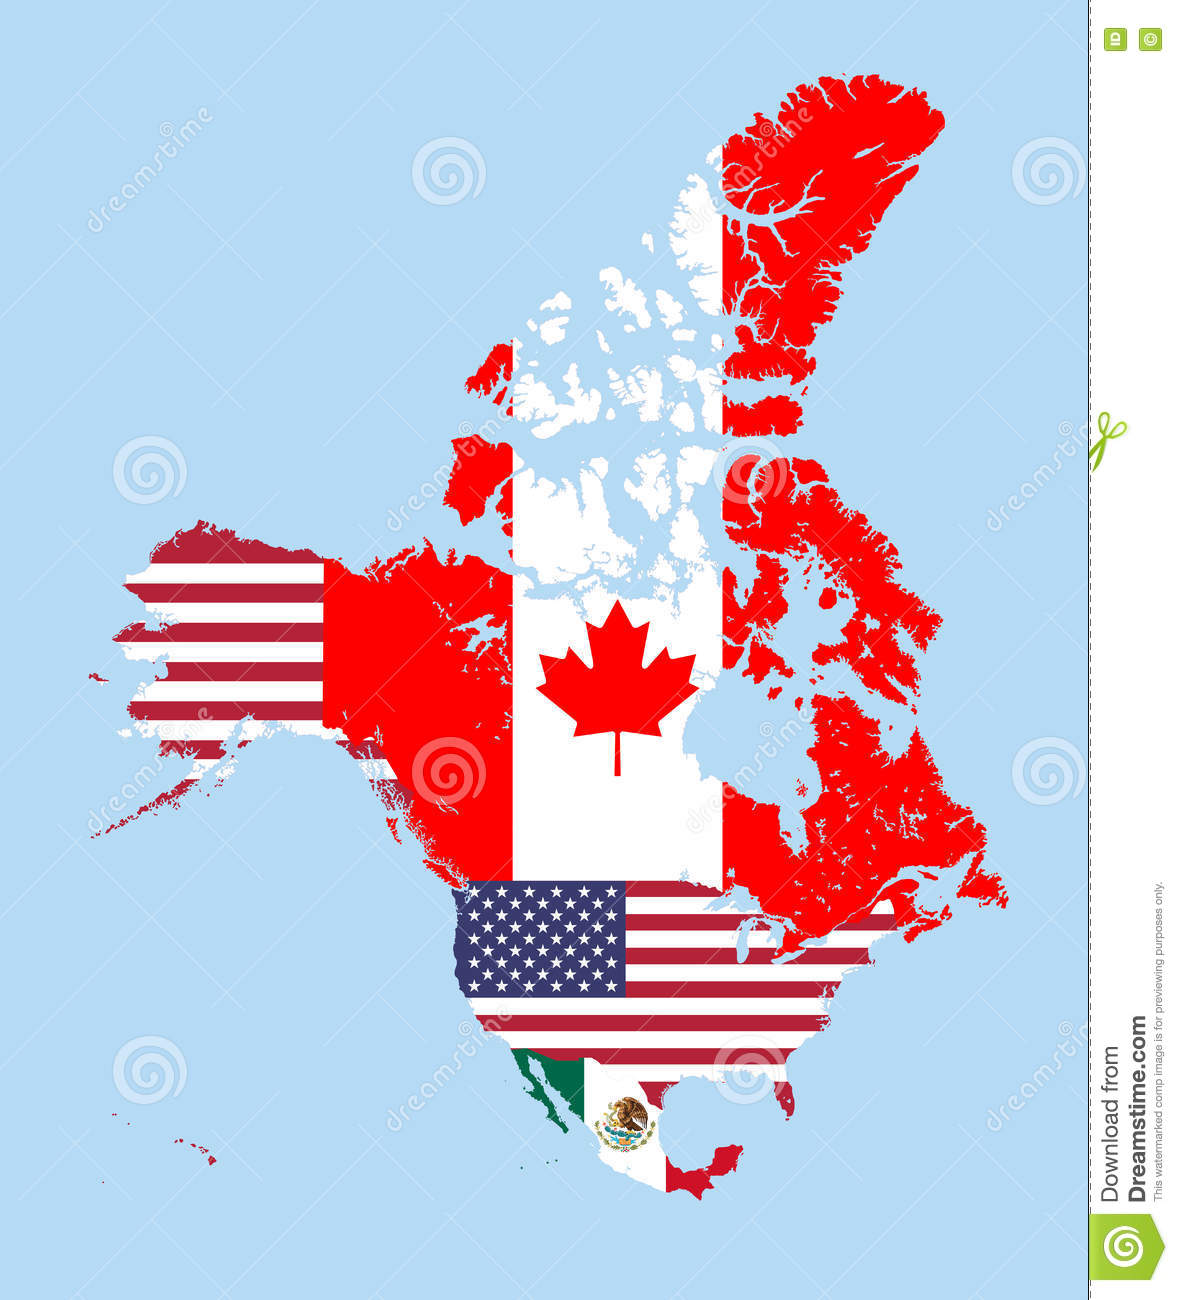 Canada United States And Mexico Vector Map Combined With Flags